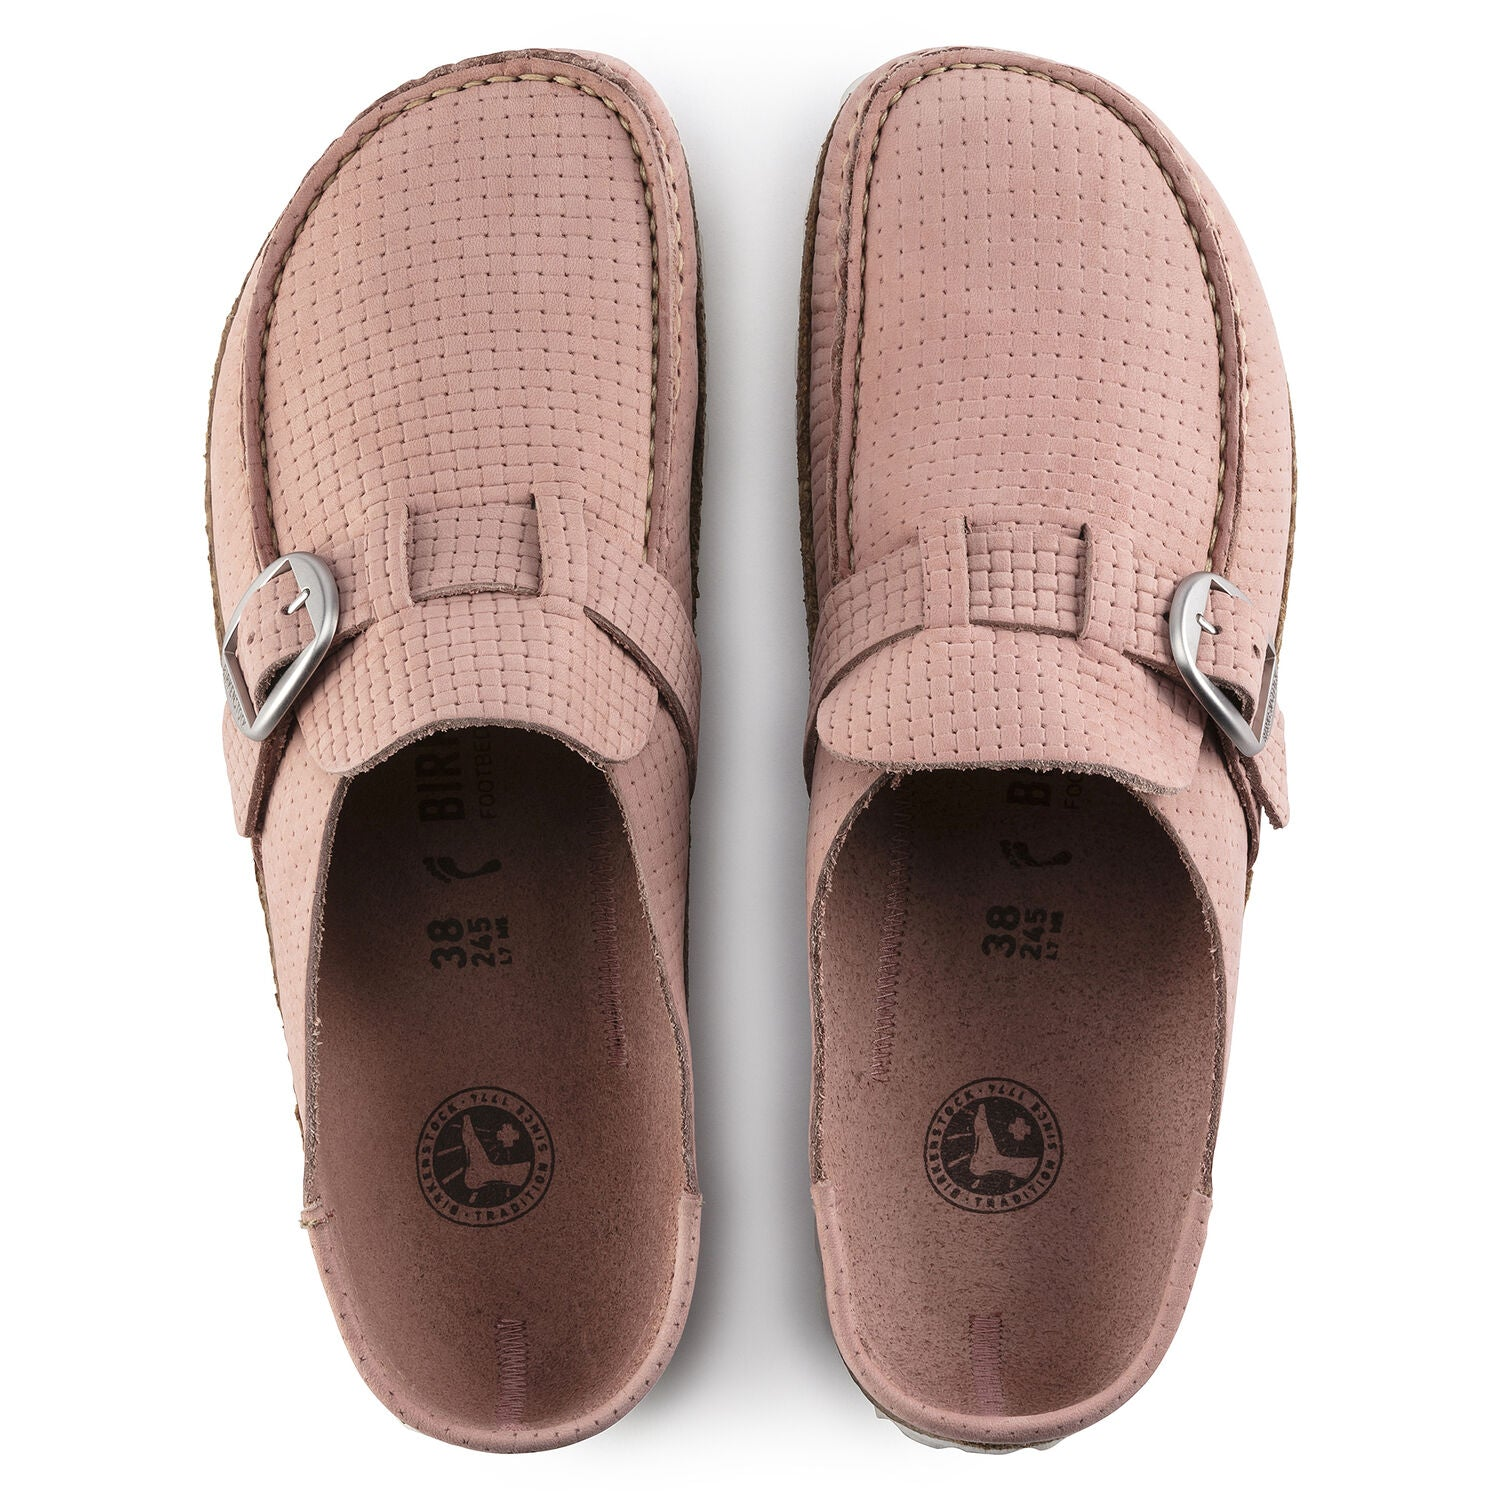 BIRKENSTOCK - BUCKLEY EMBOSSED NUBUK IN SOFT PINK